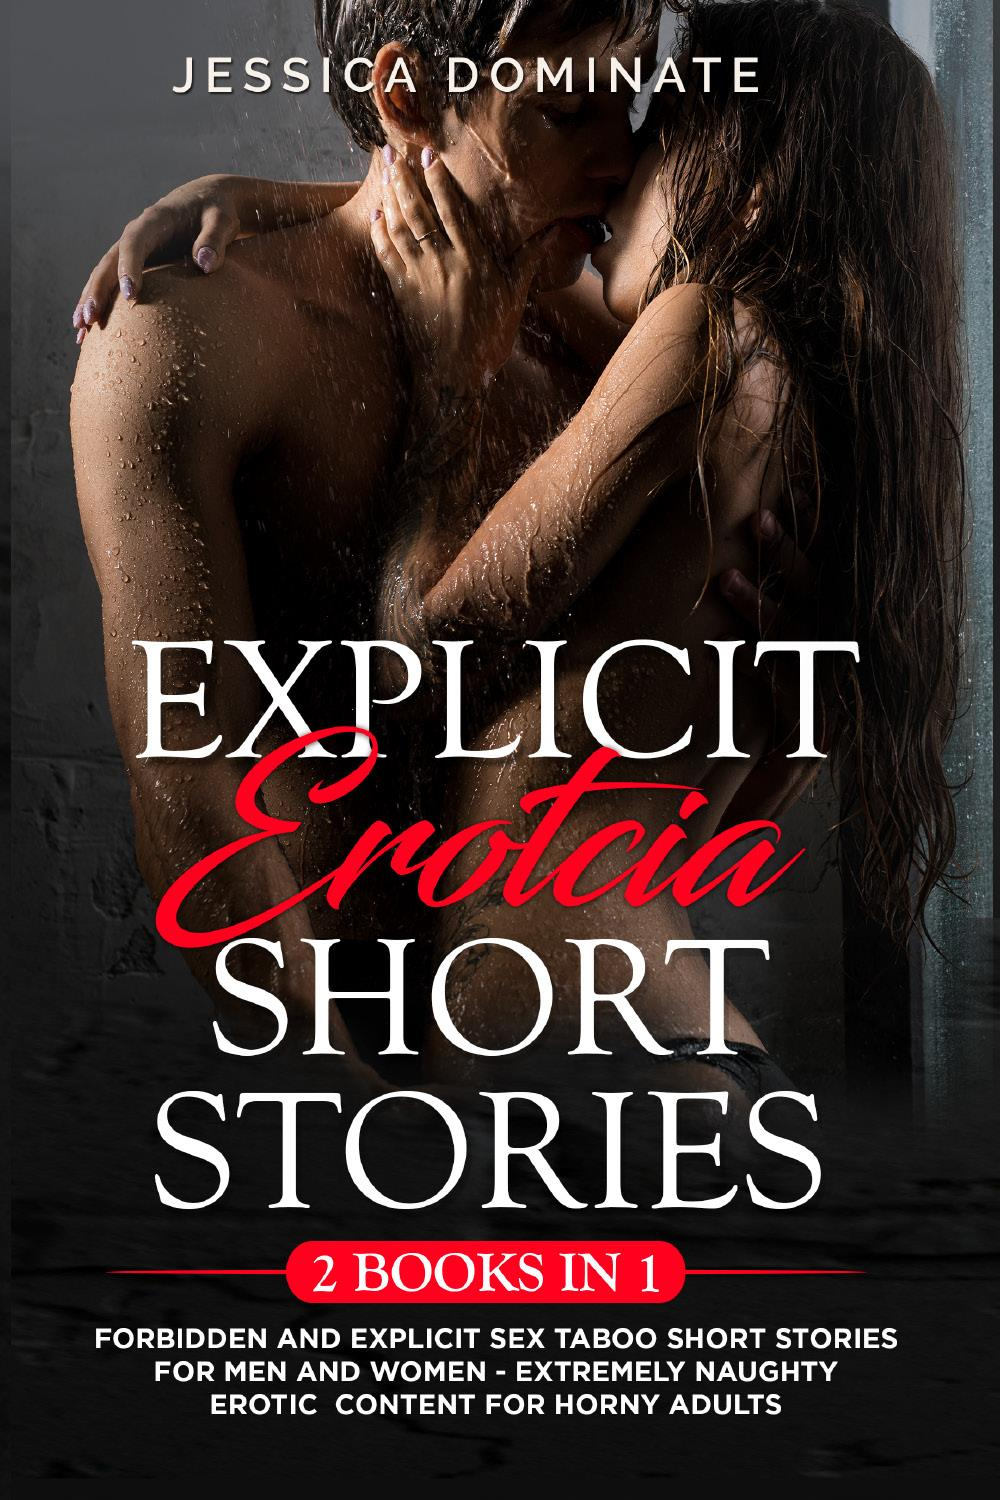 Explicit Erotcia Short Stories (2 Books in 1). Forbidden and Explicit Sex Taboo Short Stories for Men and Women - Extremely Naughty Erotic Content for Horny Adults